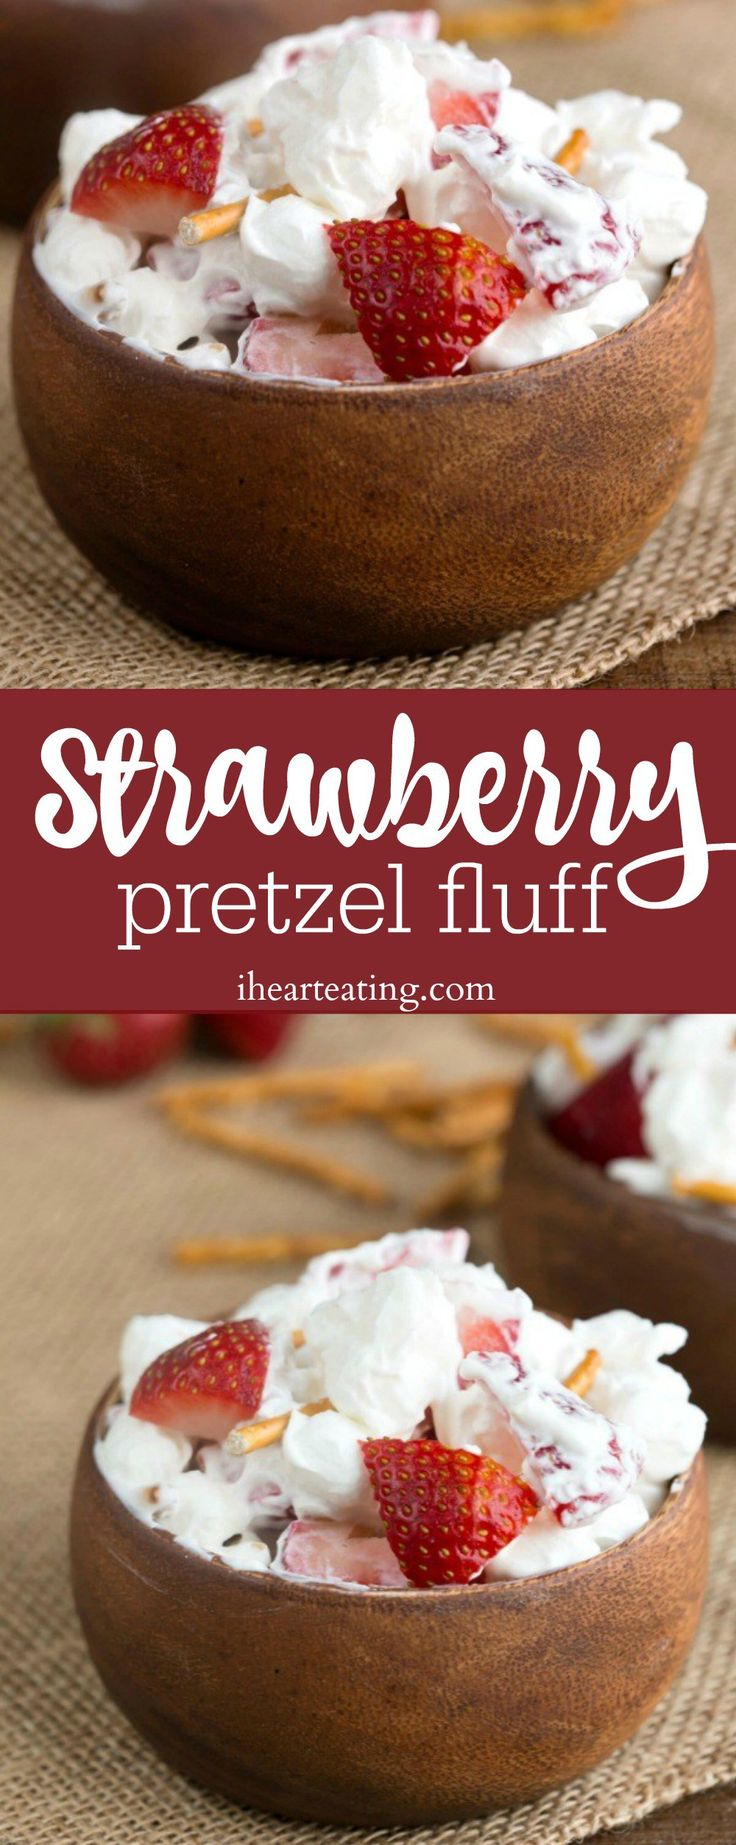 Strawberry Pretzel Fluff Recipe - no bake dessert salad that's easy to make and is so light and refreshing!